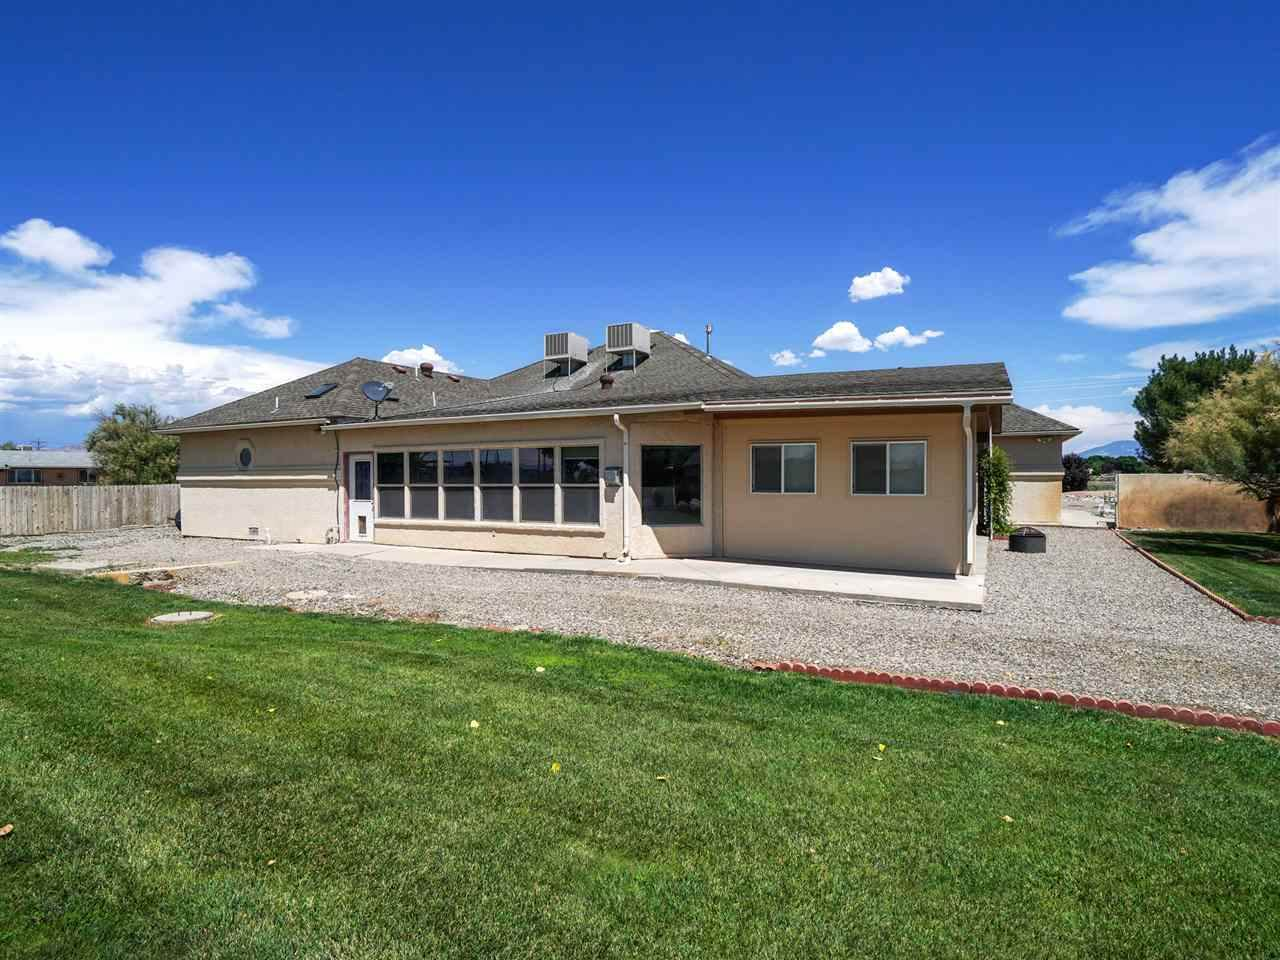 911 22 Road, Grand Junction, CO 81505